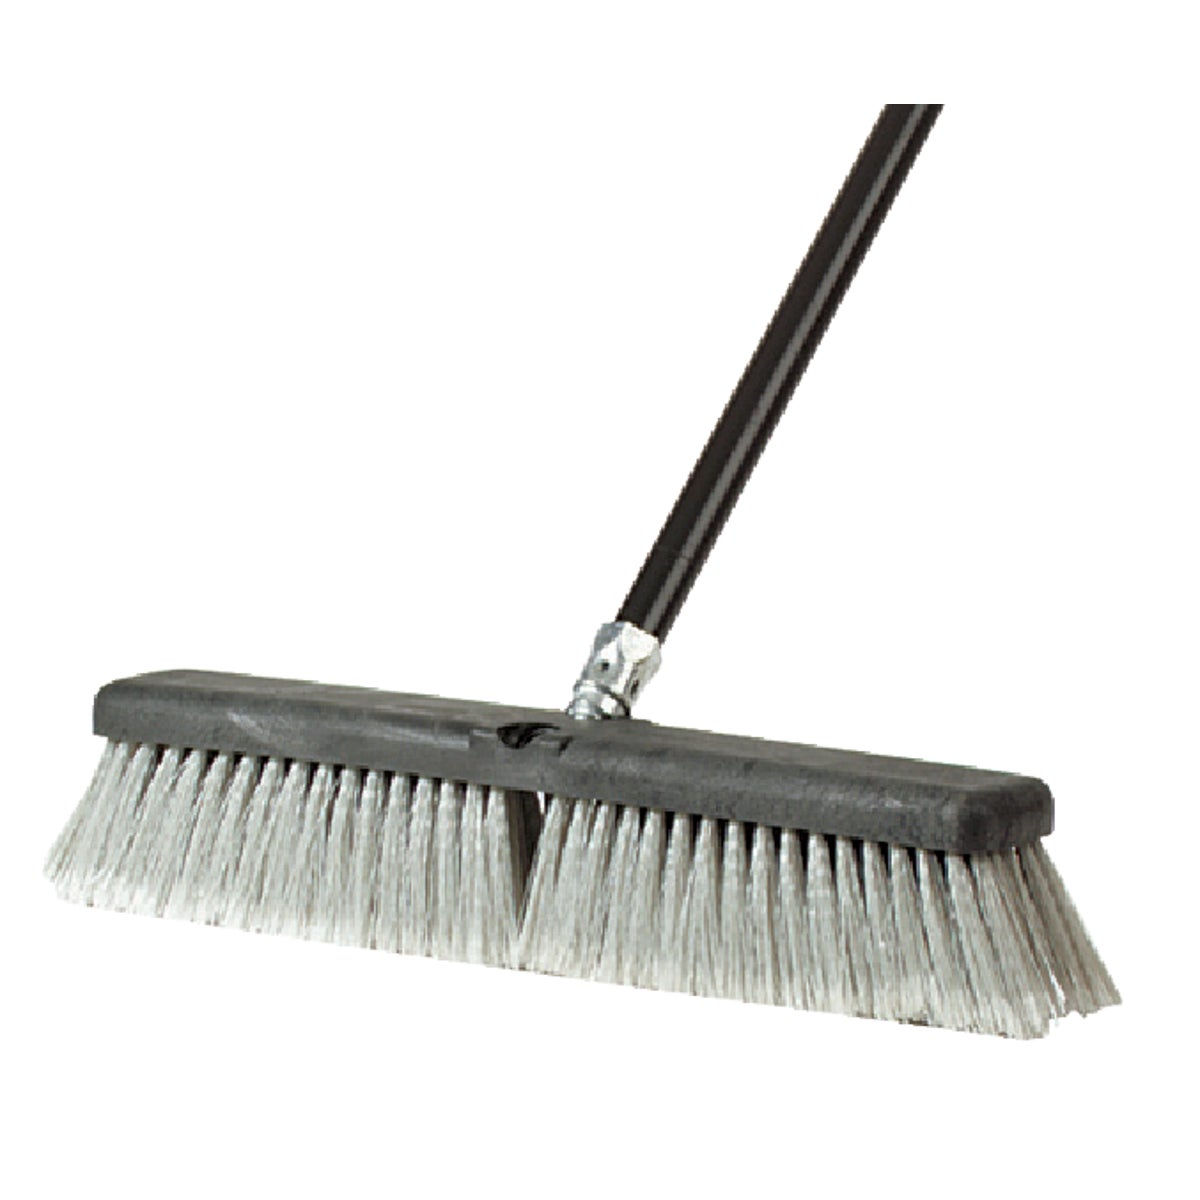 "18"" FINE PUSH BROOM - DIB89230 by D Q B Ind"